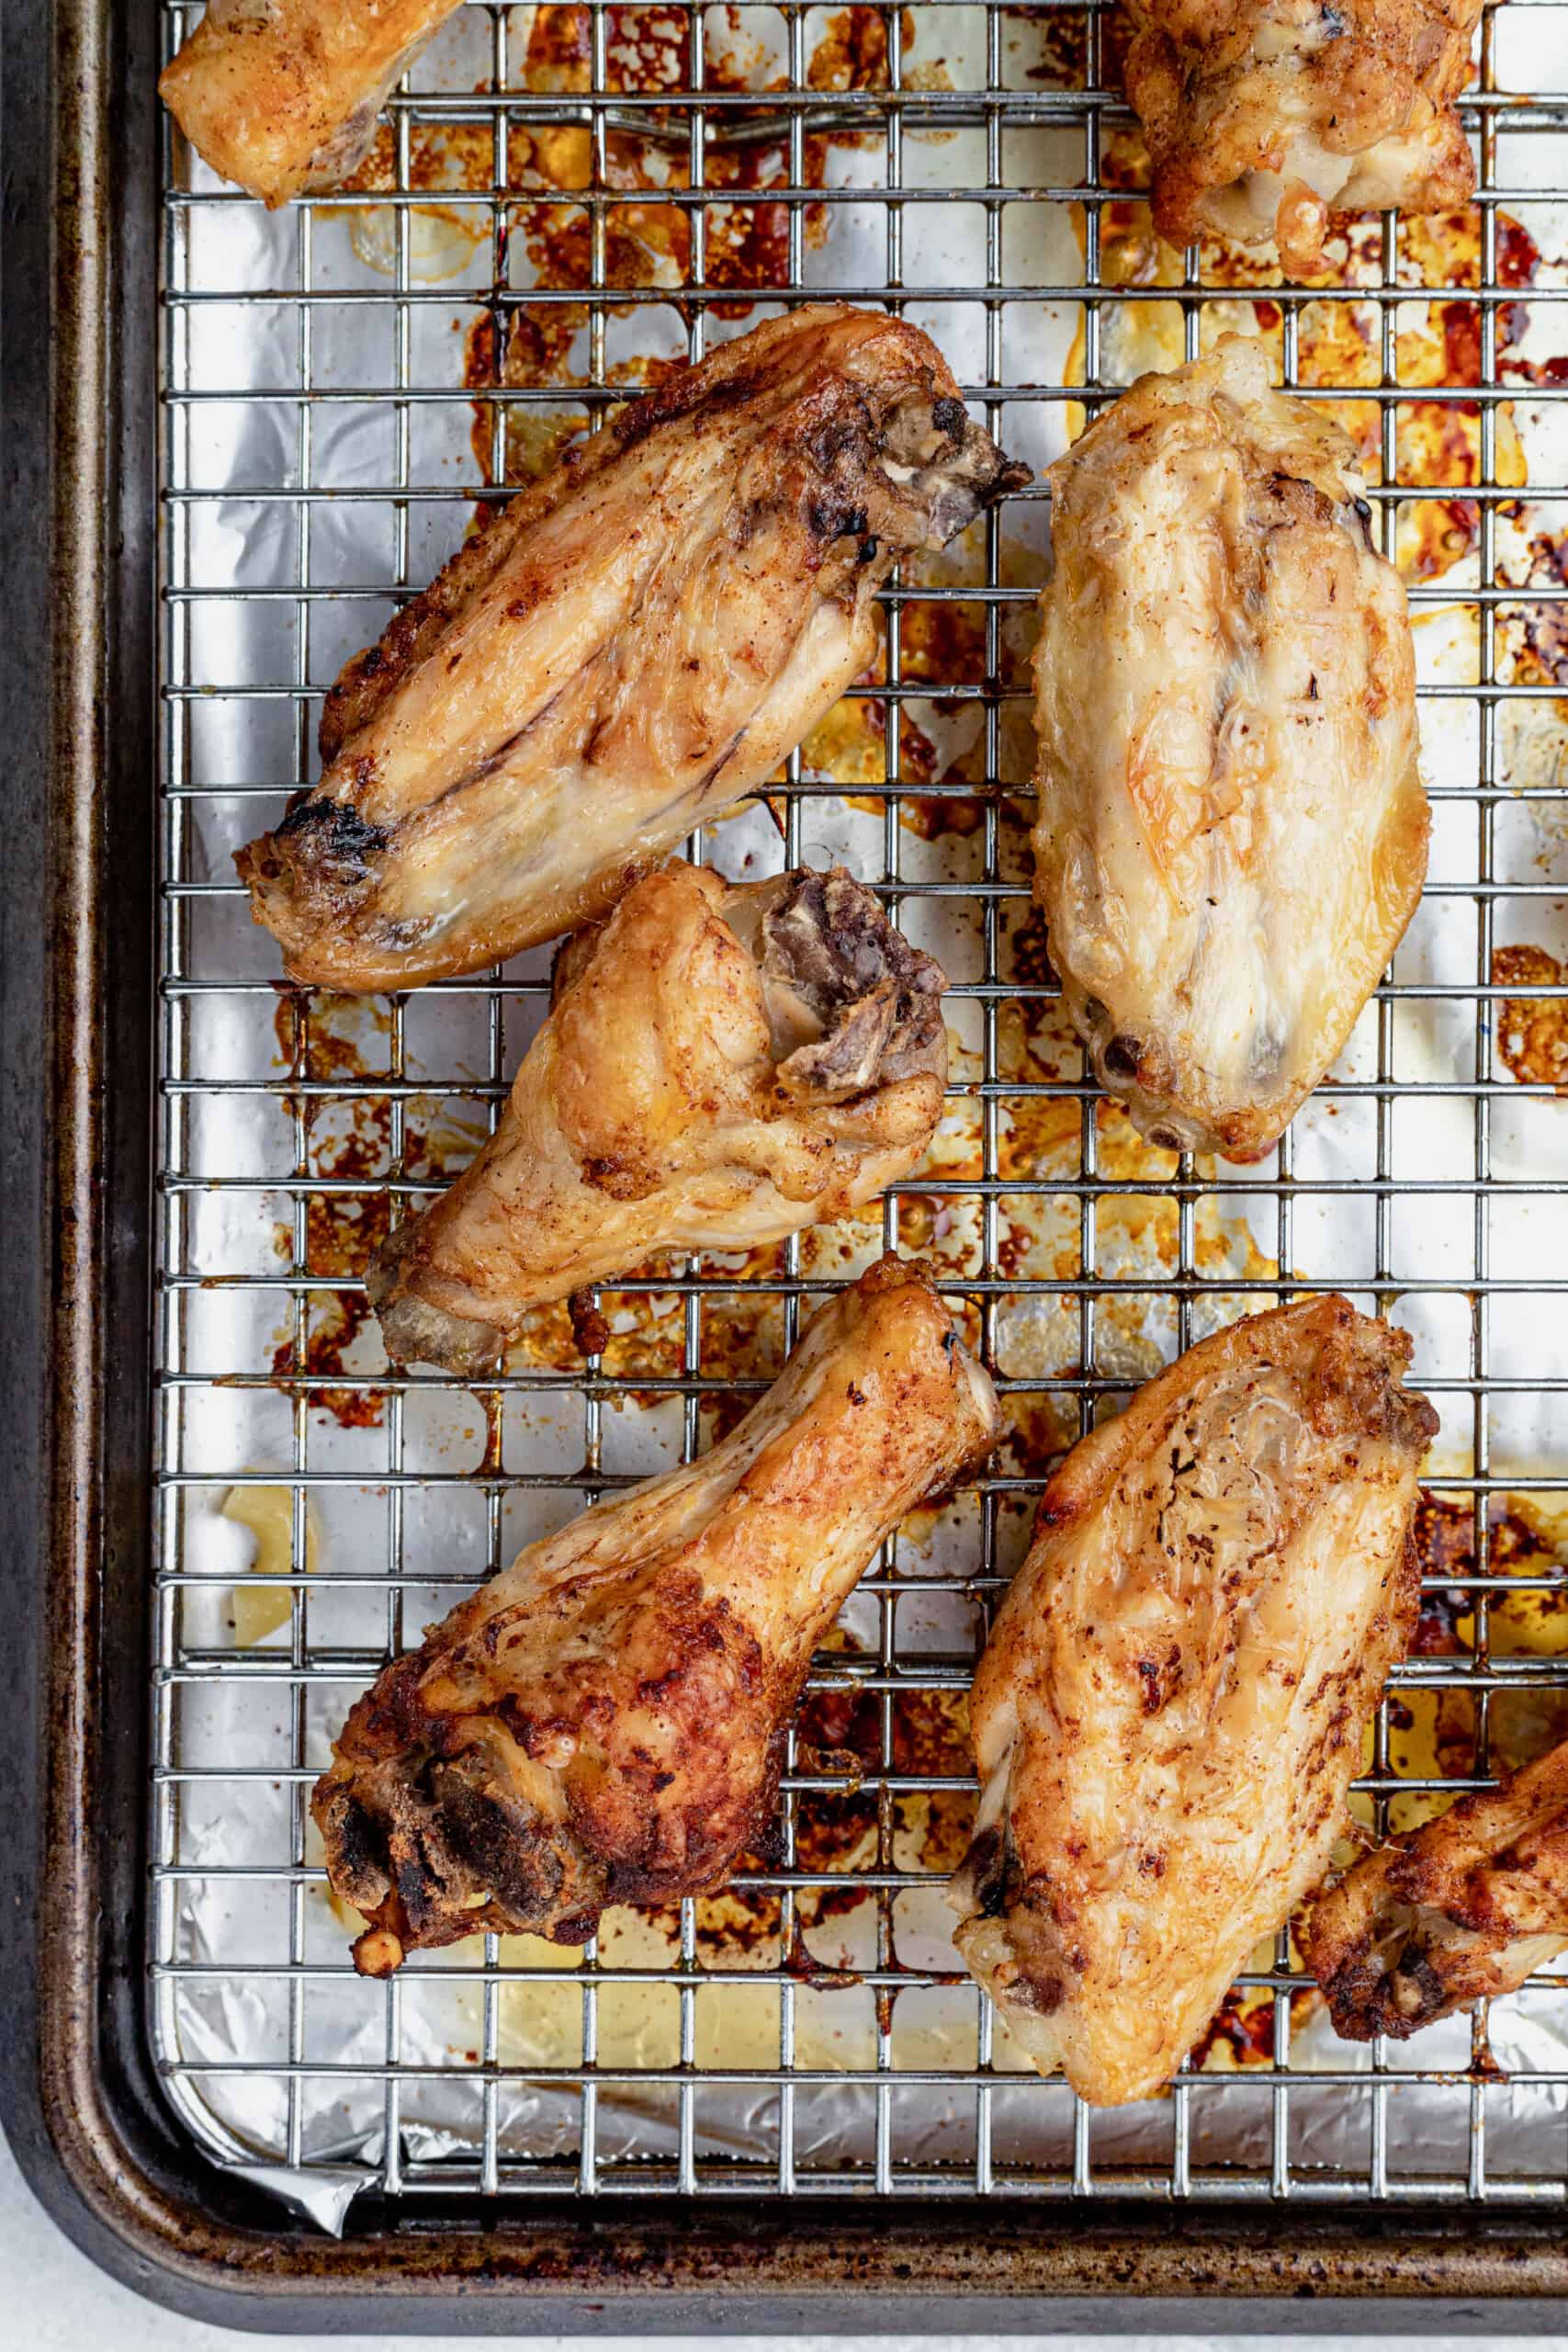 Baked Chicken Wings on a Wire Rack Over a Baking Sheet Lined with Aluminum Foil